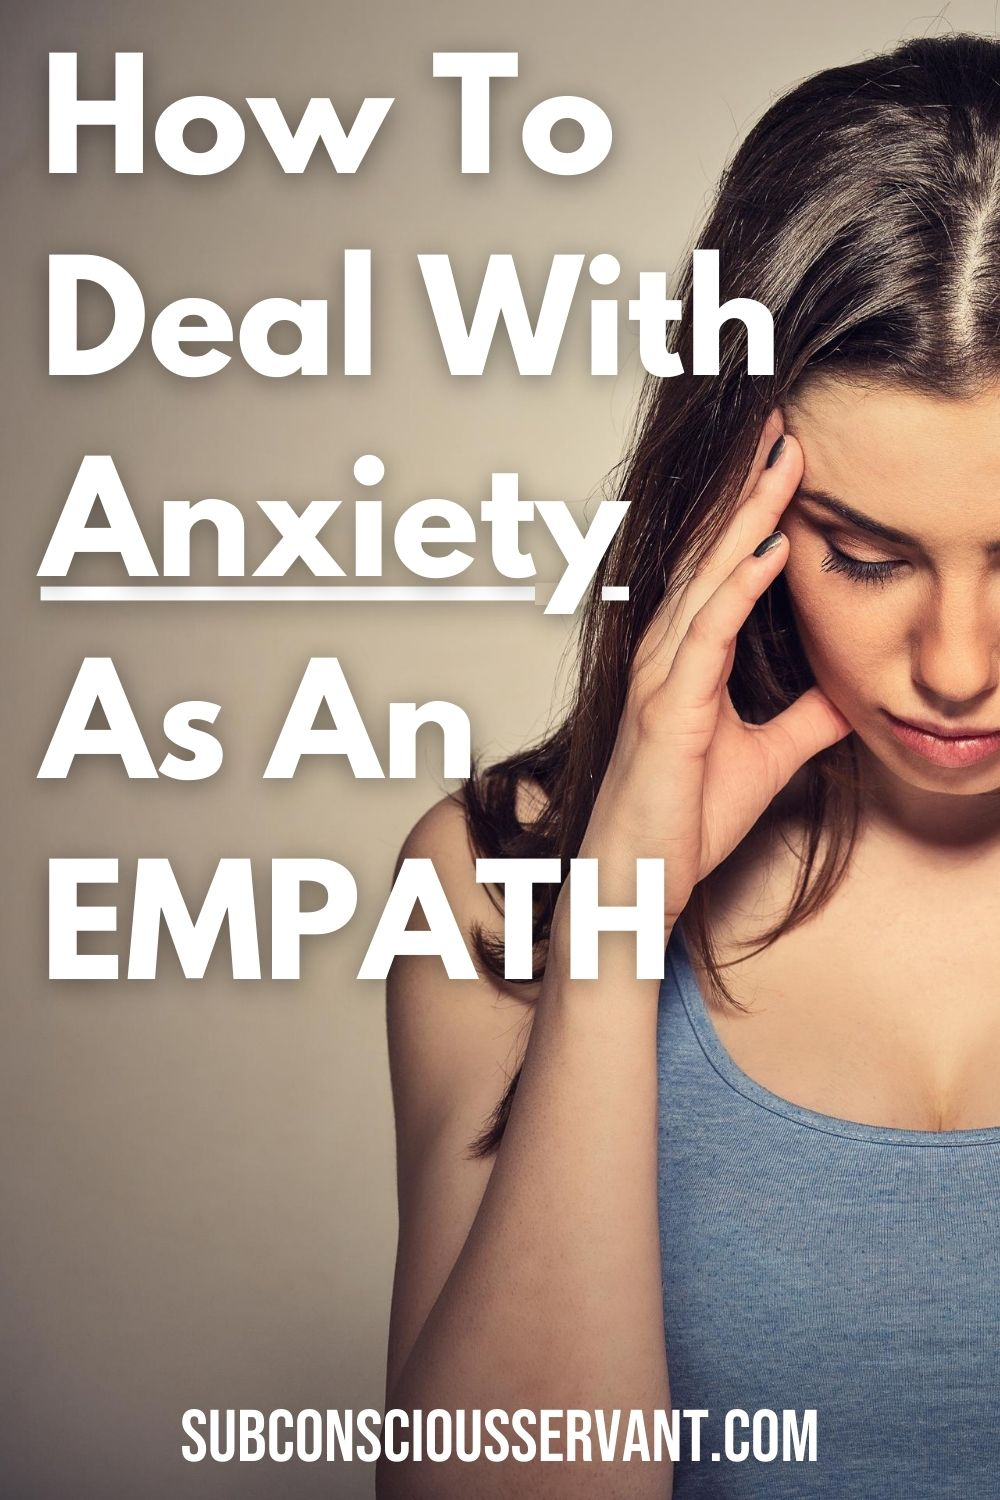 How To Deal With Anxiety As An Empath